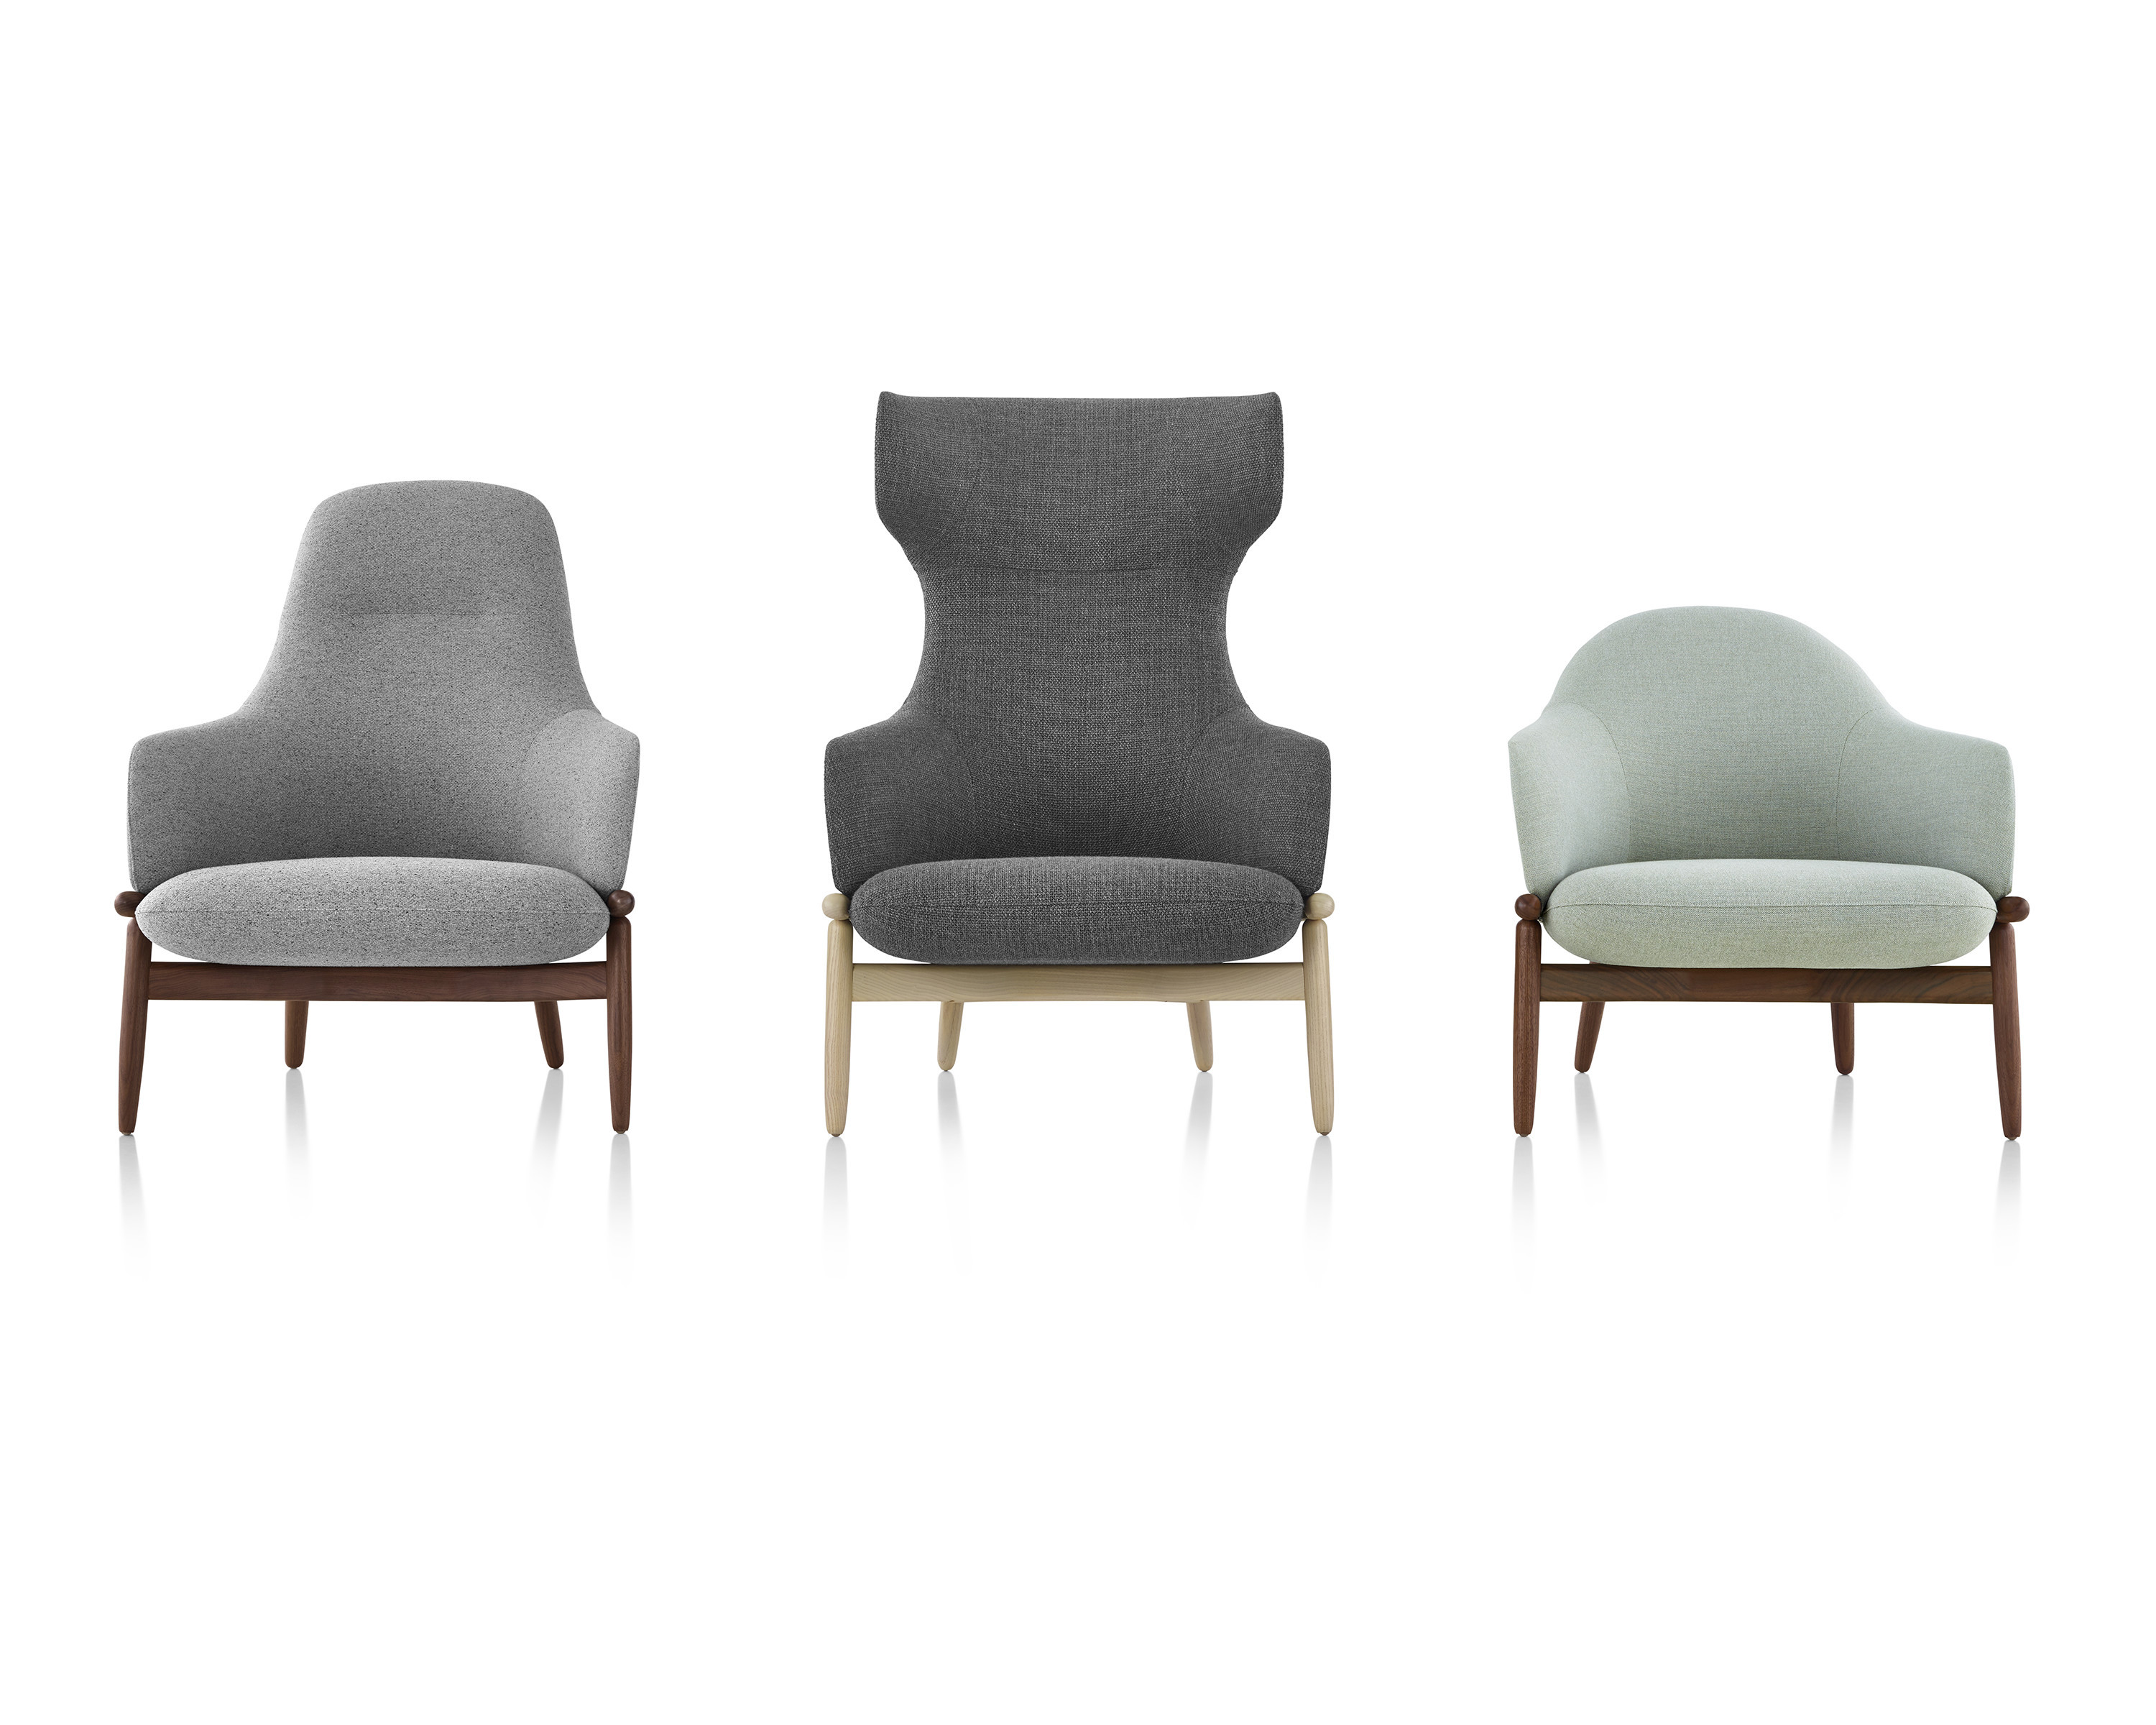 Geiger Reframe Lounge Seating Family